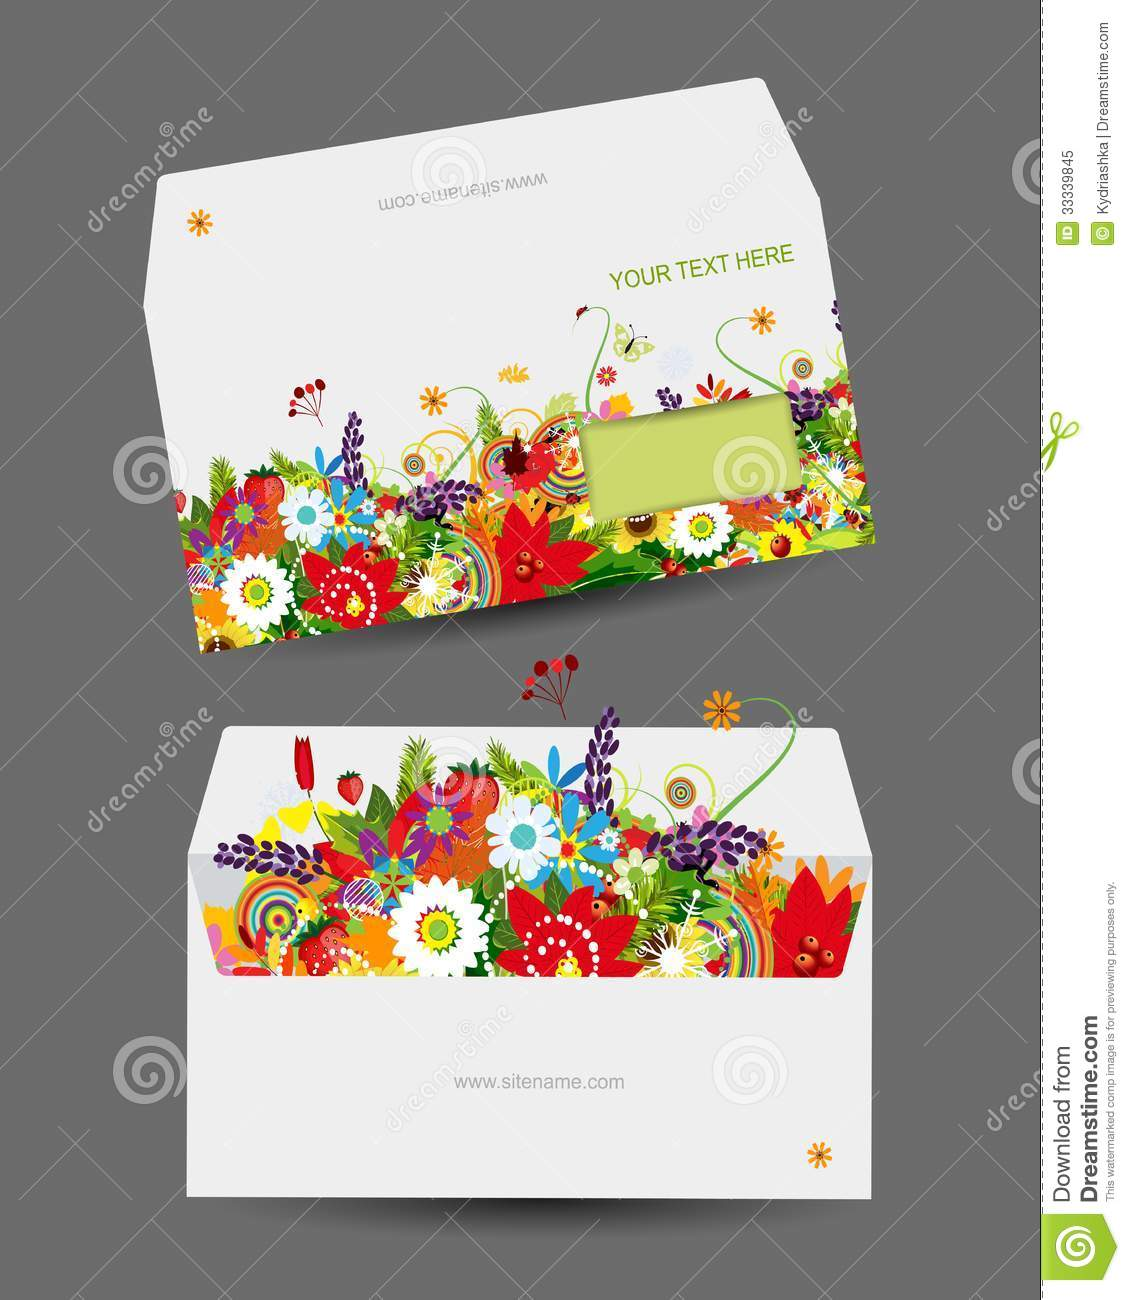 Envelope Template Floral Design Royalty Free Stock Photo Image 33339845